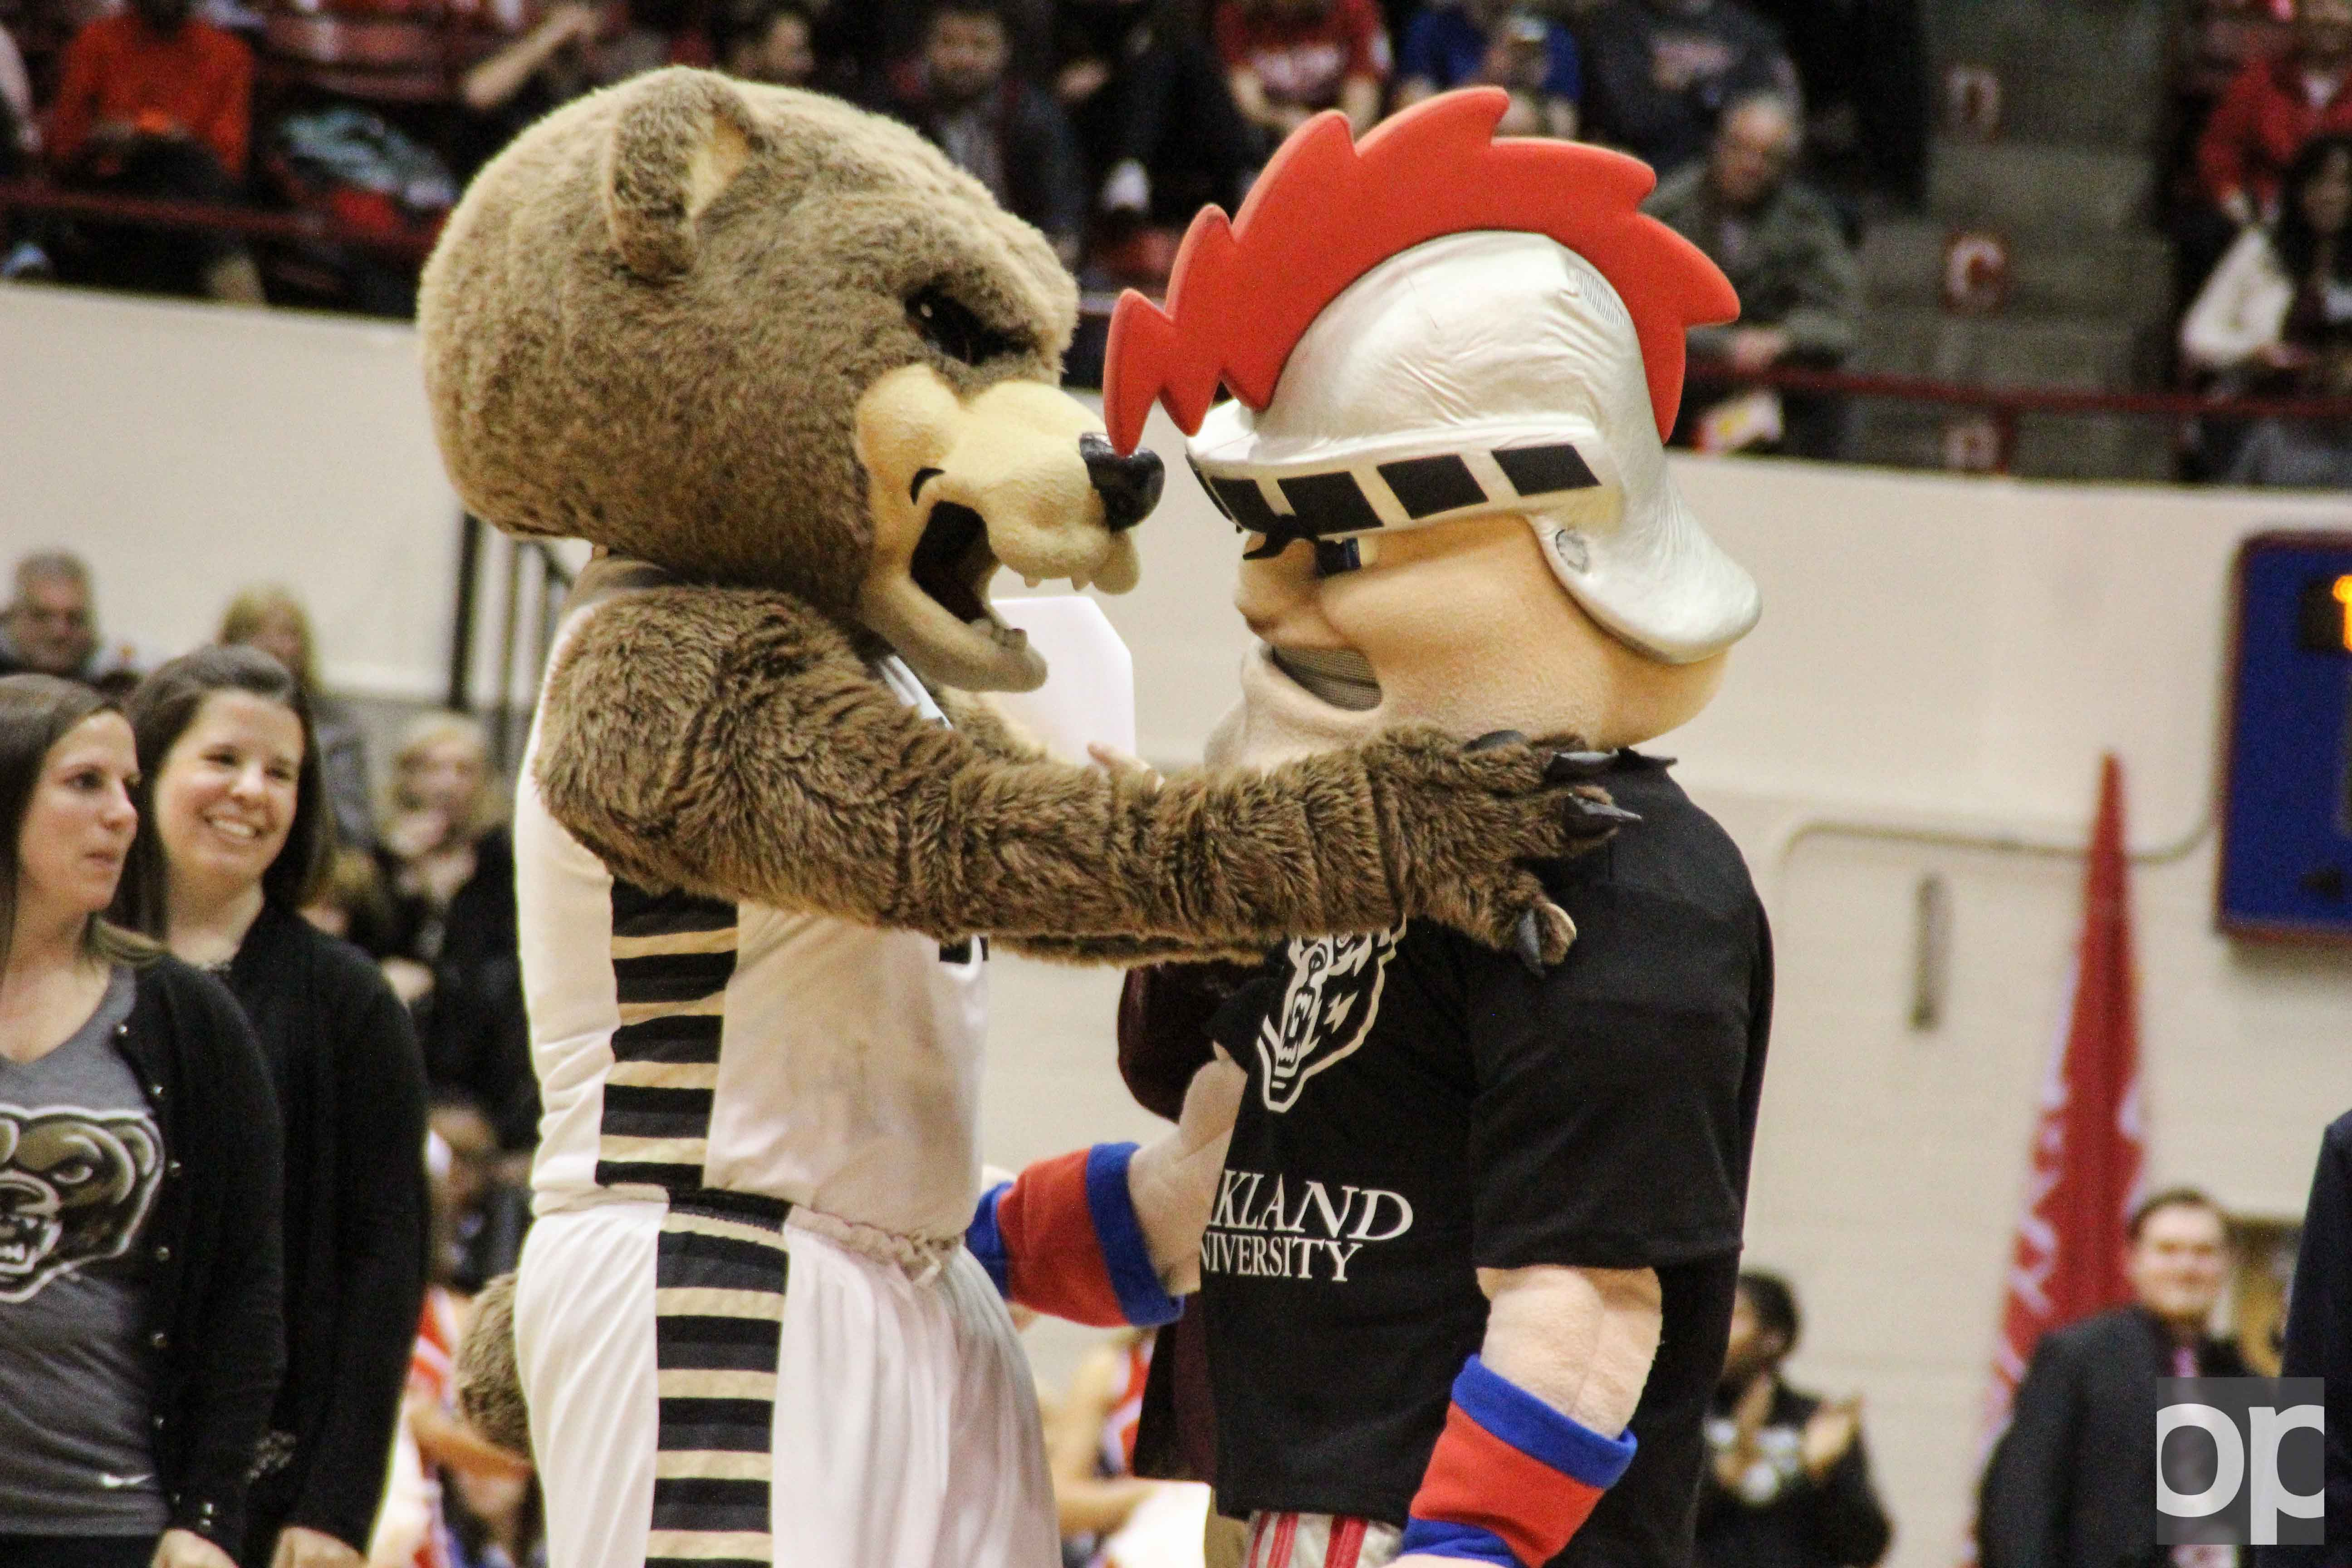 Since Oakland's 626 donors beat out UDM's 470 donors to win the Giving Challenge, Tommy the Titan had to wear the bear at the men's basketball rivalry game on Friday, Feb. 10 in Calihan Hall.